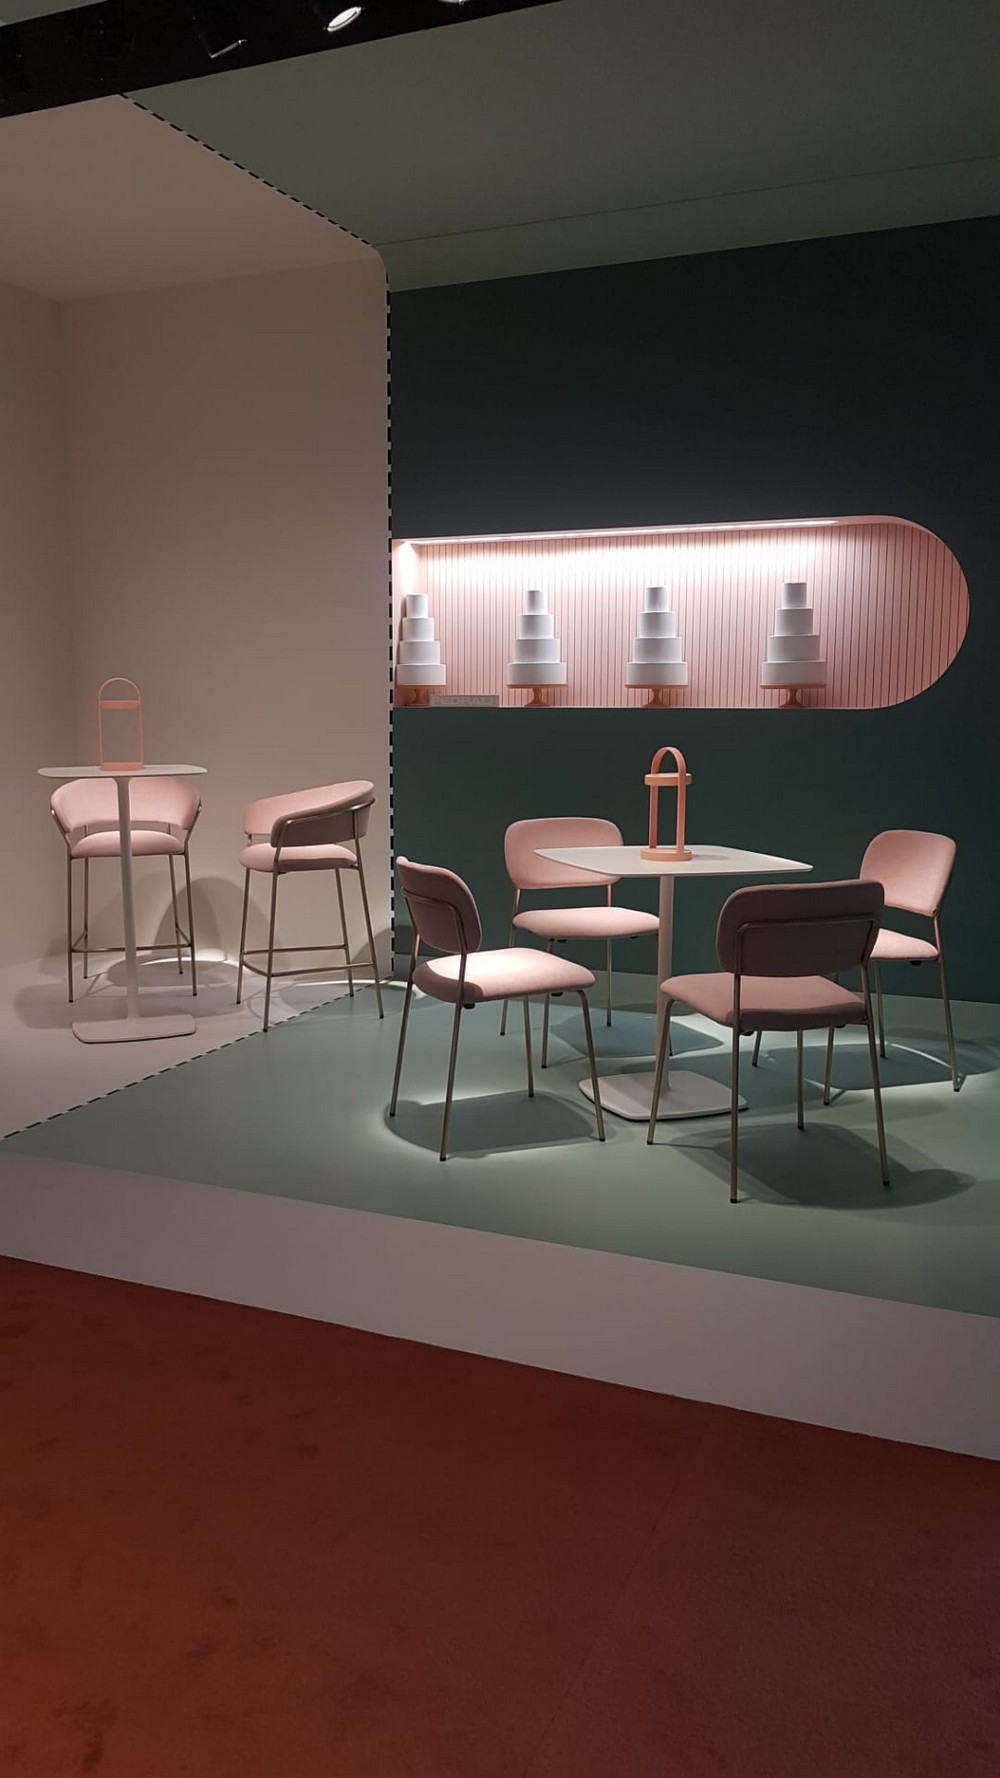 The Best News & Trends Already Spotted at Maison et Objet 2020 24 maison et objet The Best News & Trends Already Spotted at Maison et Objet 2020 The Best News Trends Already Spotted at Maison et Objet 2020 24